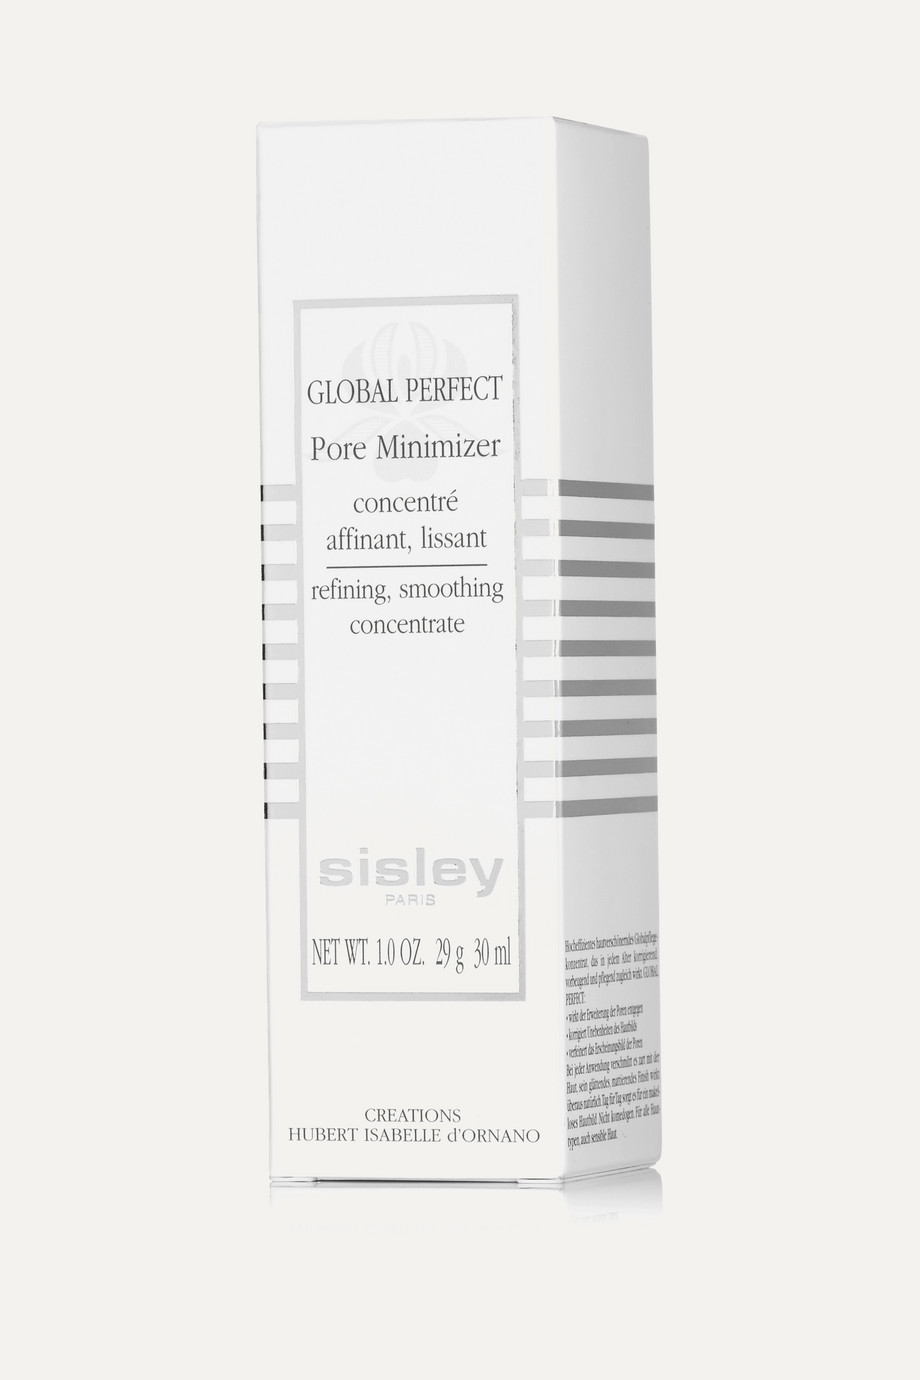 Sisley Global Perfect Pore Minimizer Concentrate, 30ml